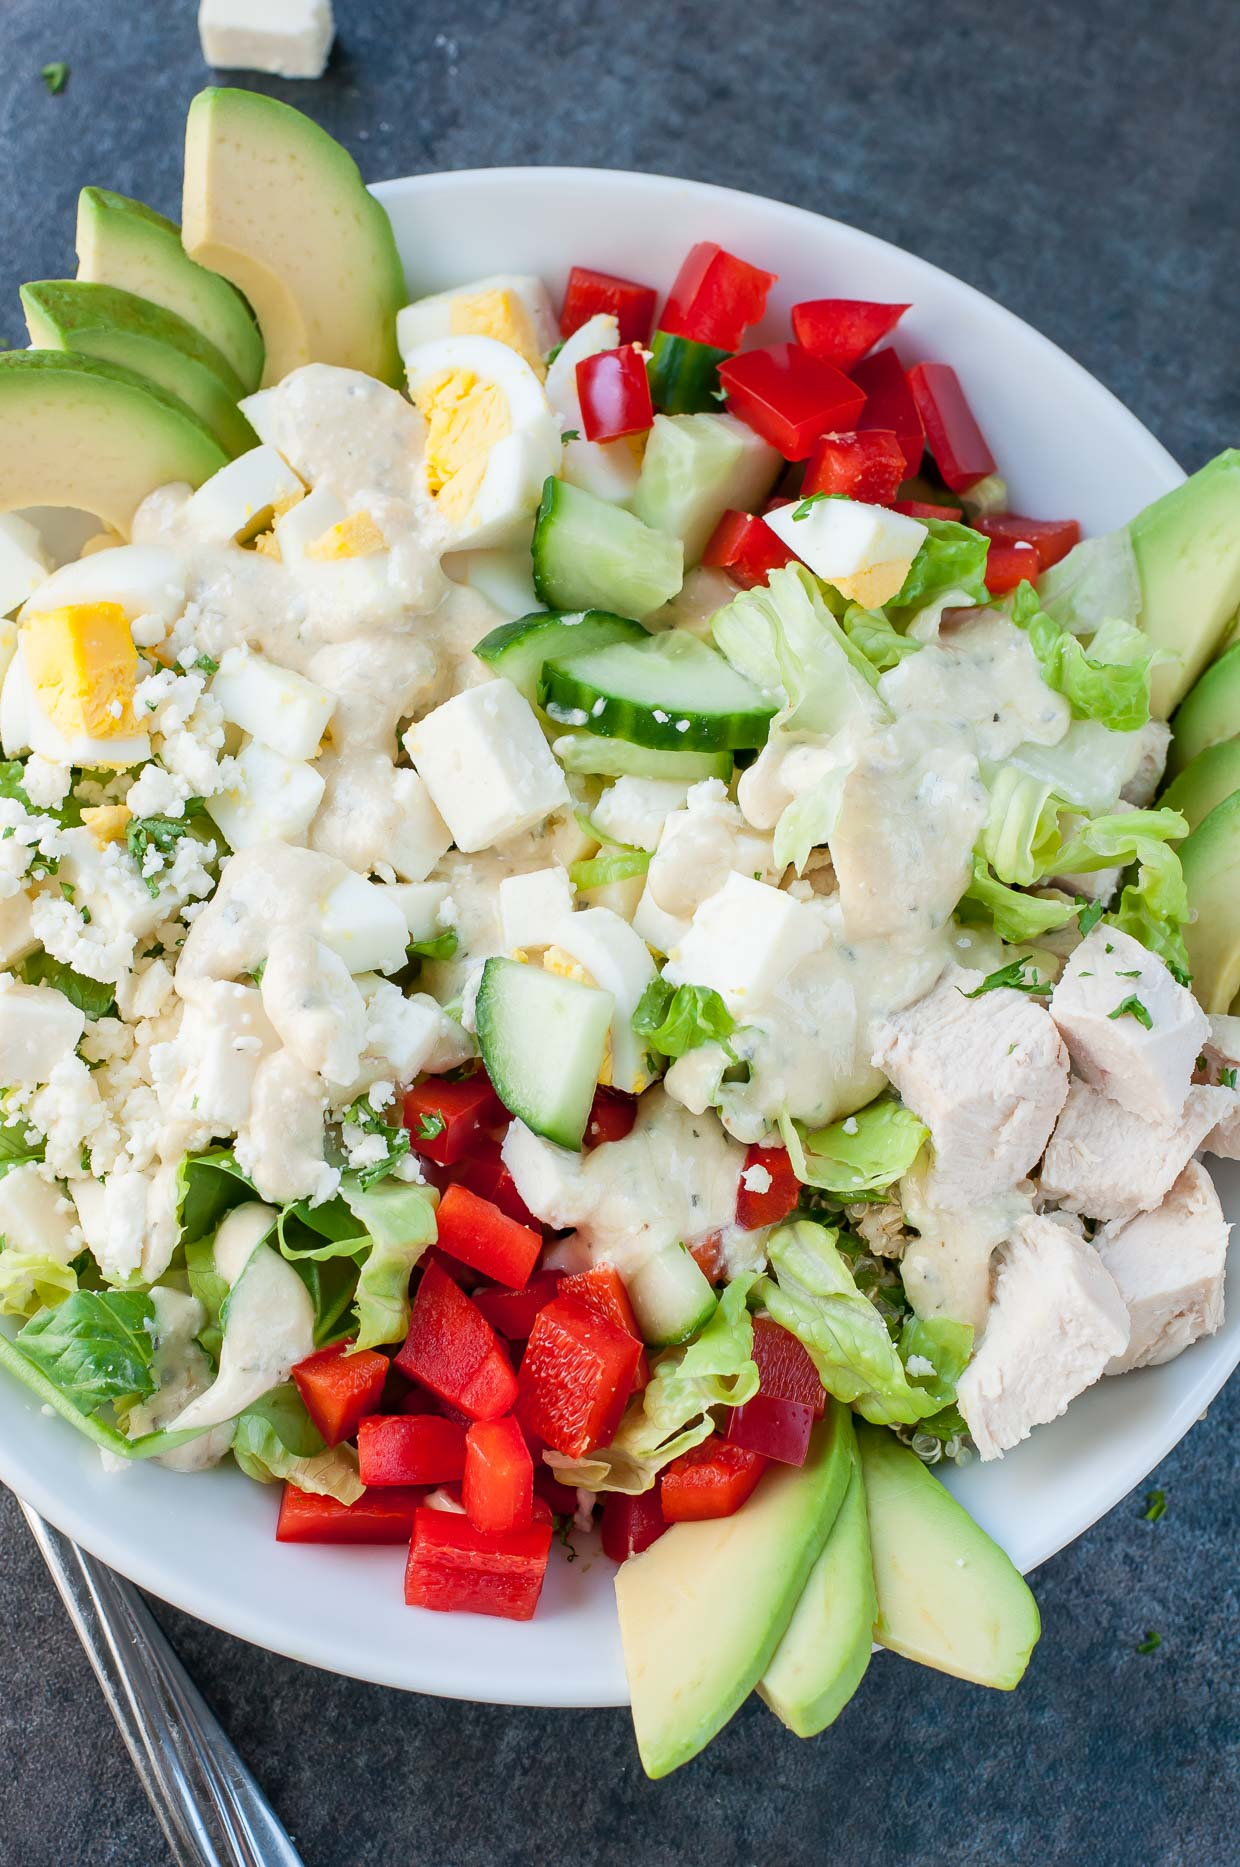 Salad recipes for easy dinners! The perfect solution for hot summer nights or when you're just too tired to cook. Also great for parties and bbq nights. Customize with your own ingredients like chicken, egg, pasta, fruit, or your favorite salad dressing. Healthy and delicious... it doesn't get better than that!